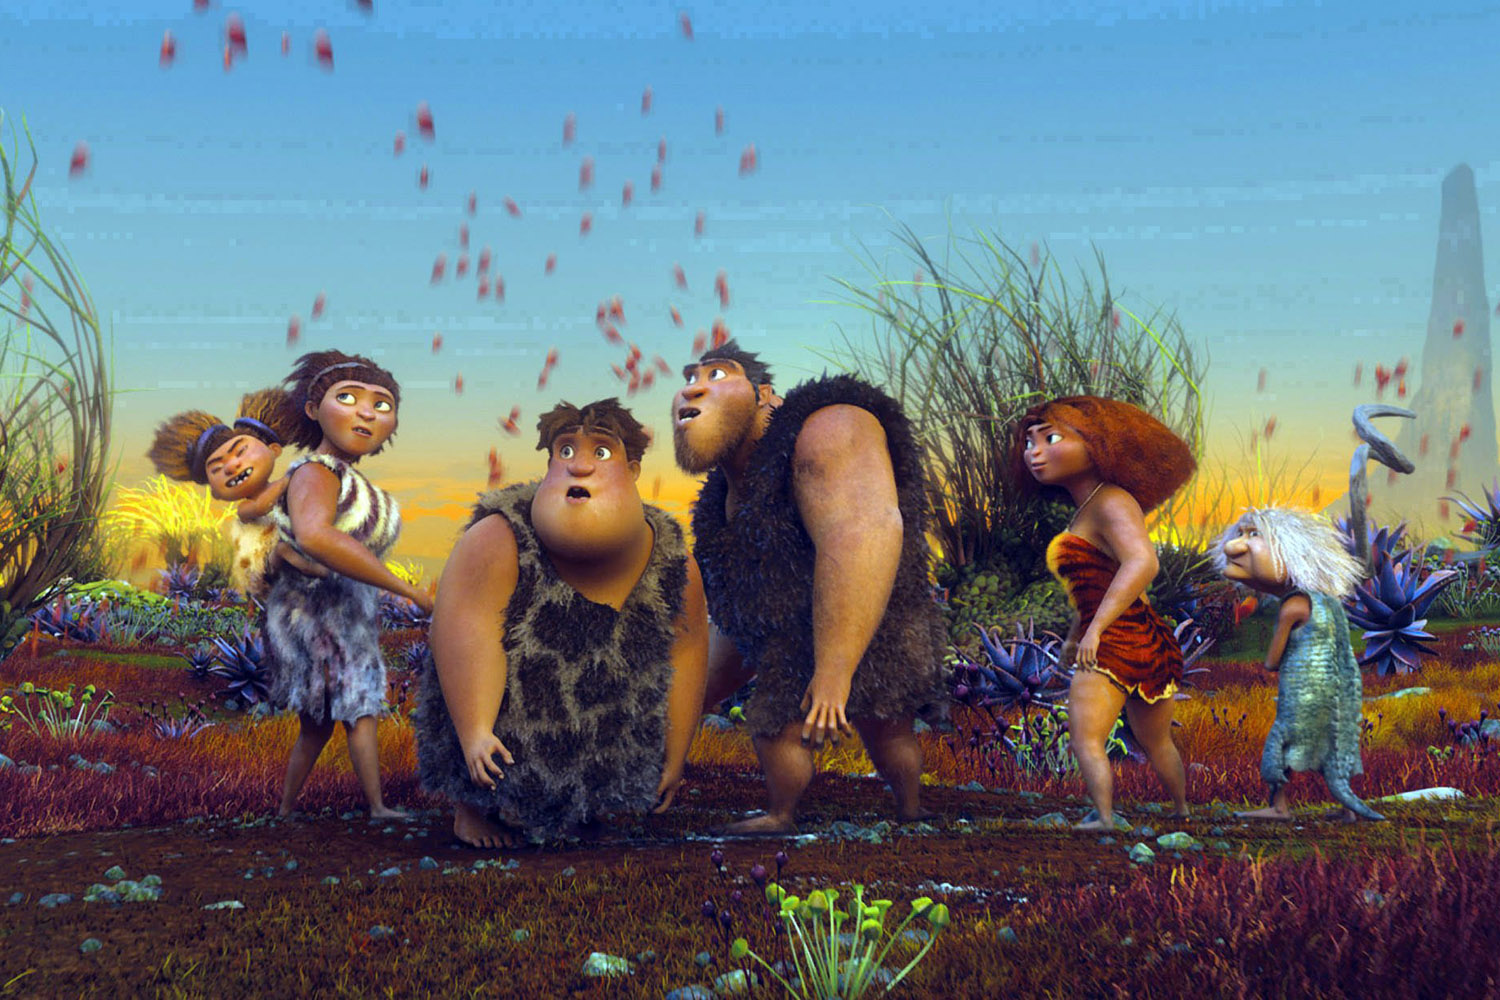 Animated film 'The Croods' dominates weekend box office